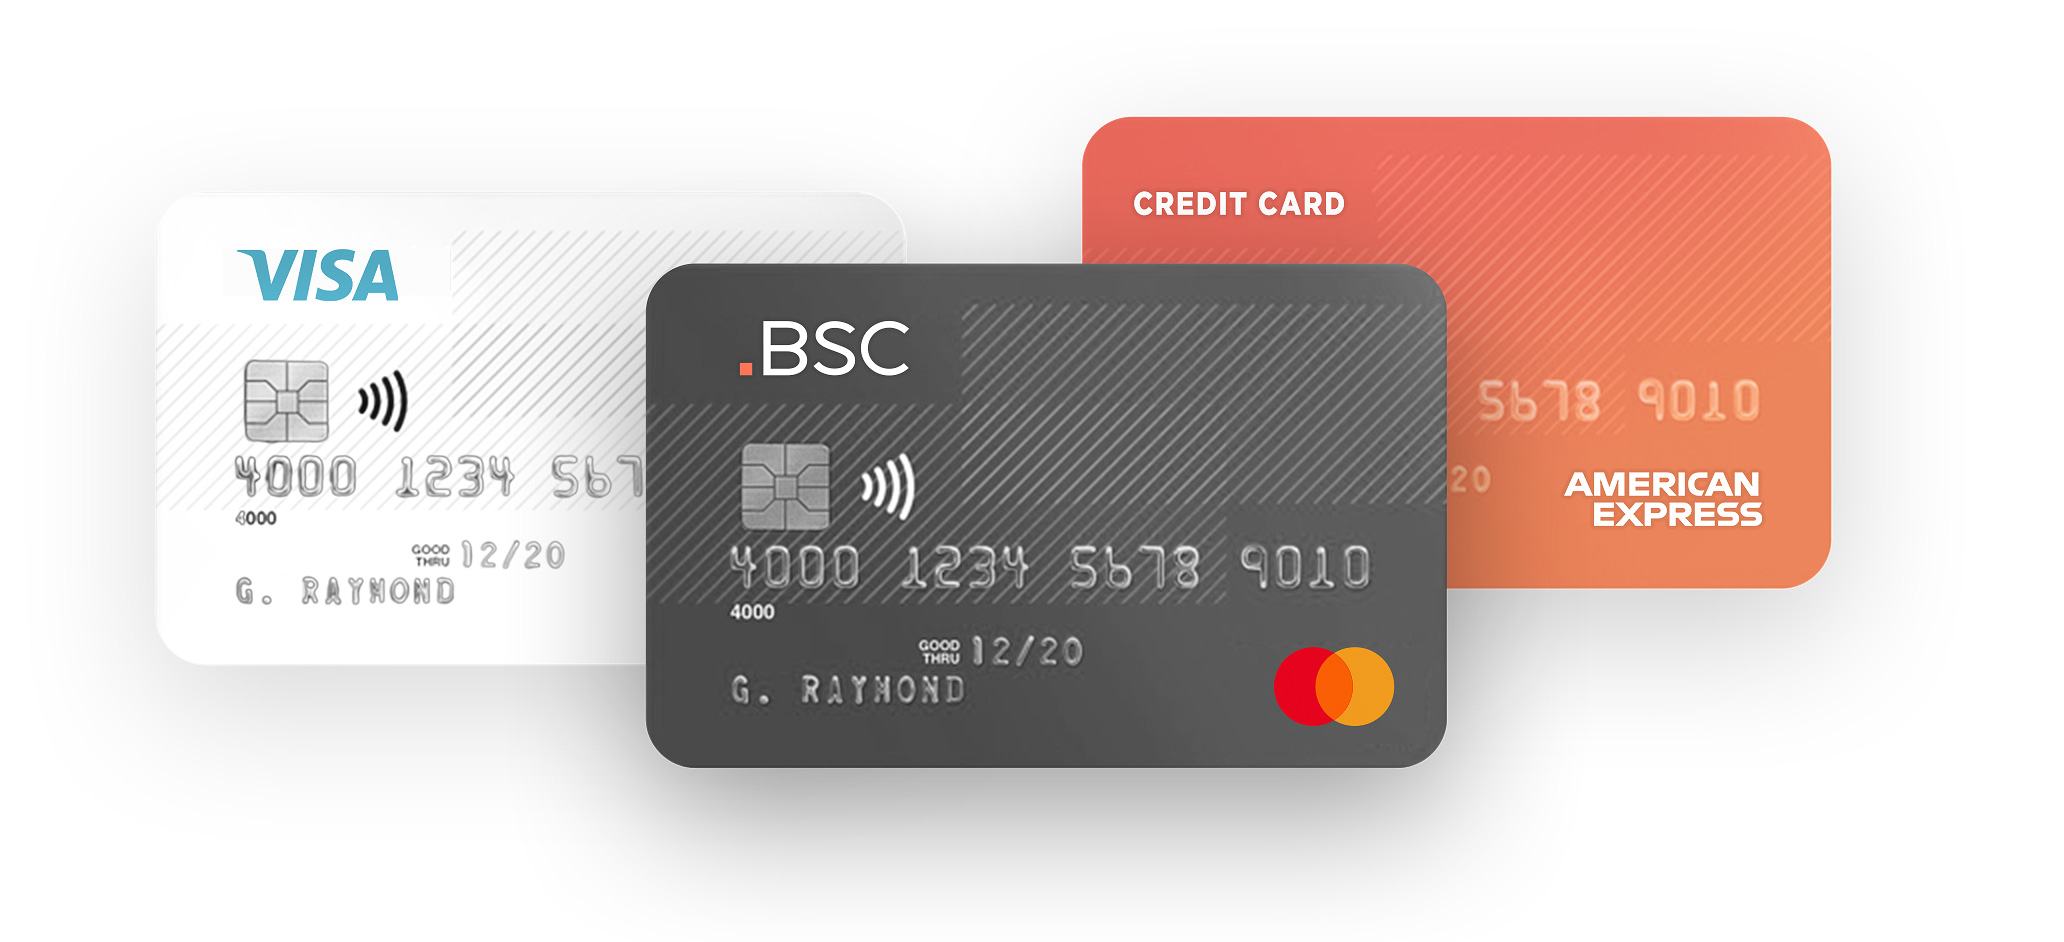 Payments And Cards Under Control